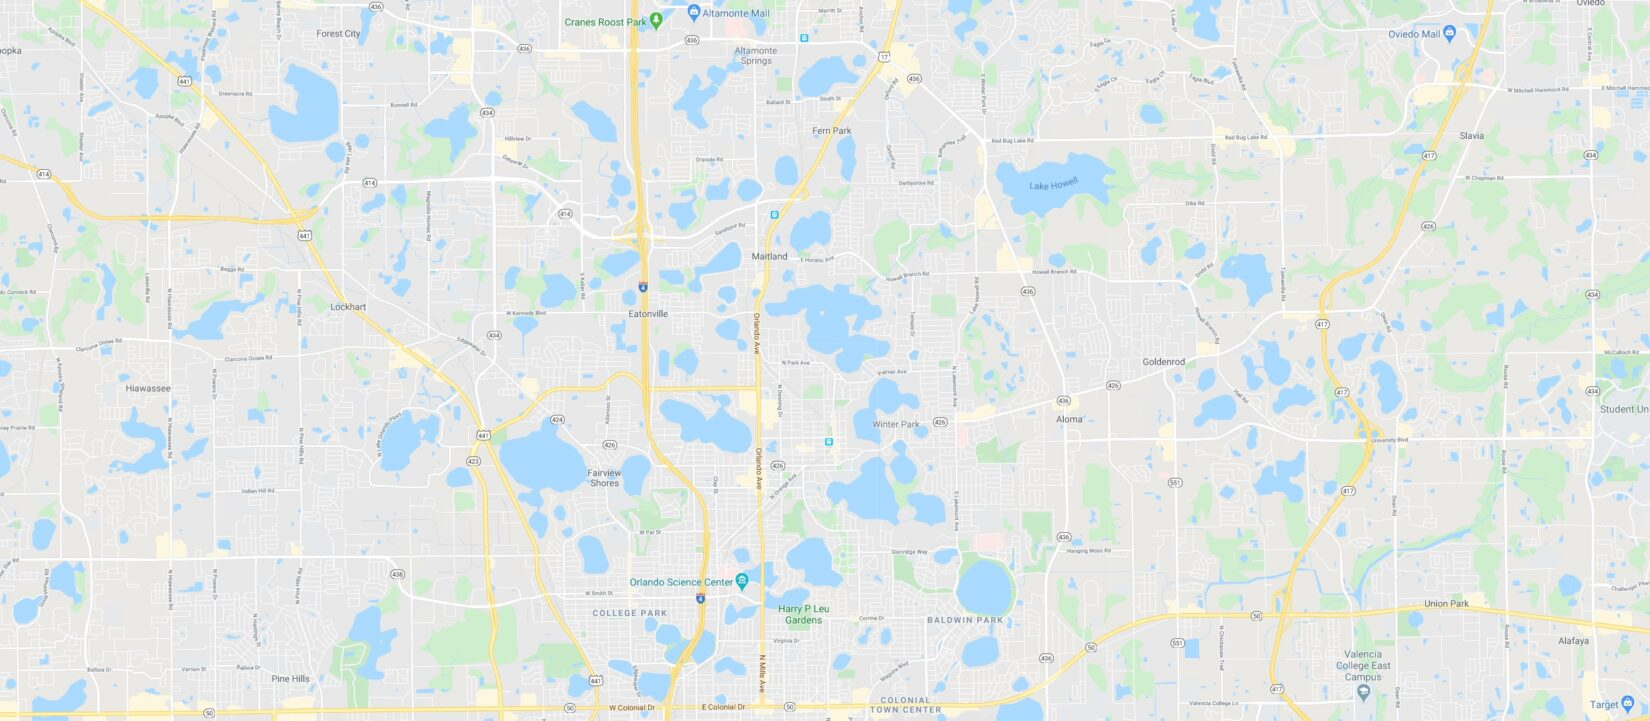 Google Maps of the Orlando/Maitland Area